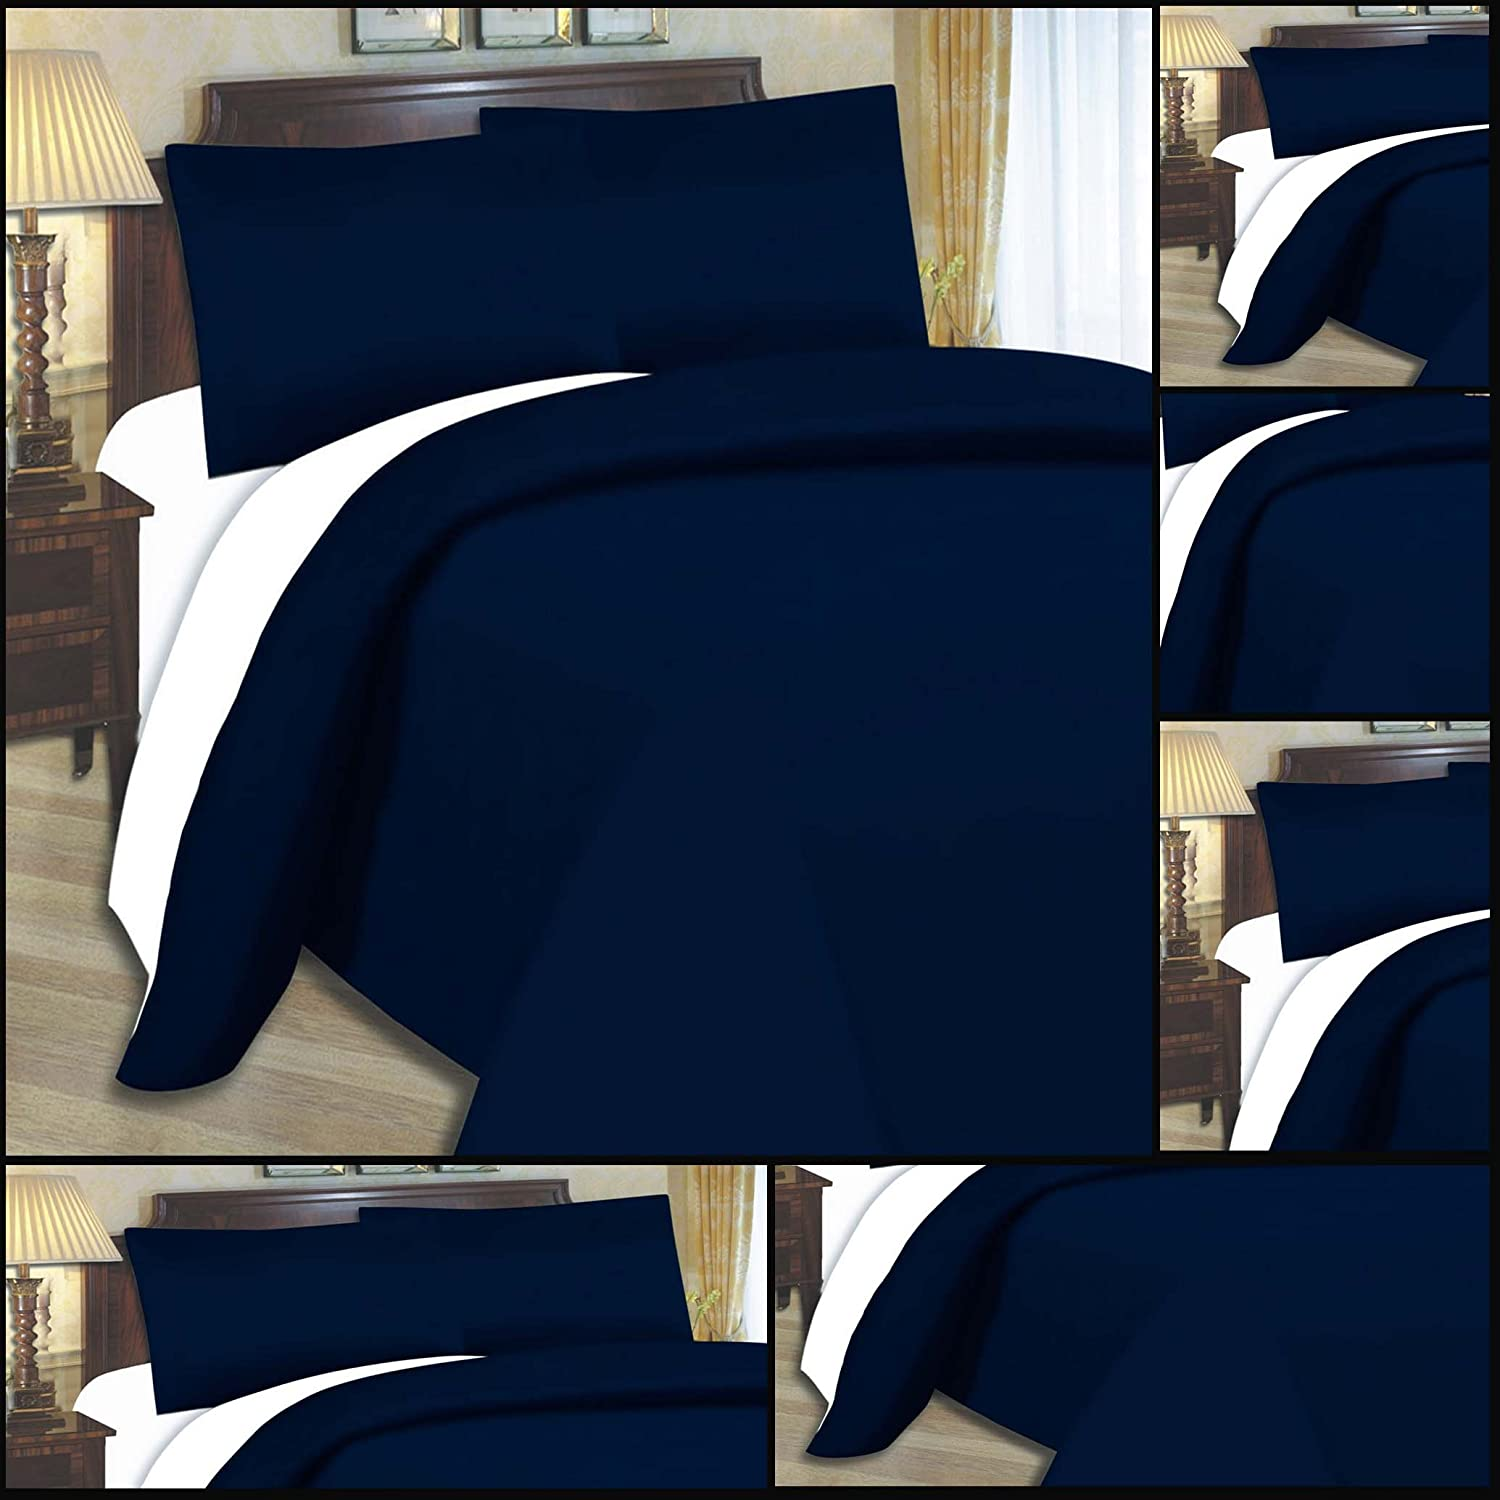 Adam Linens Luxury 4 PCS complete reversible duvet cover and fitted sheet bed set Double Size Navy Blue White Adam's